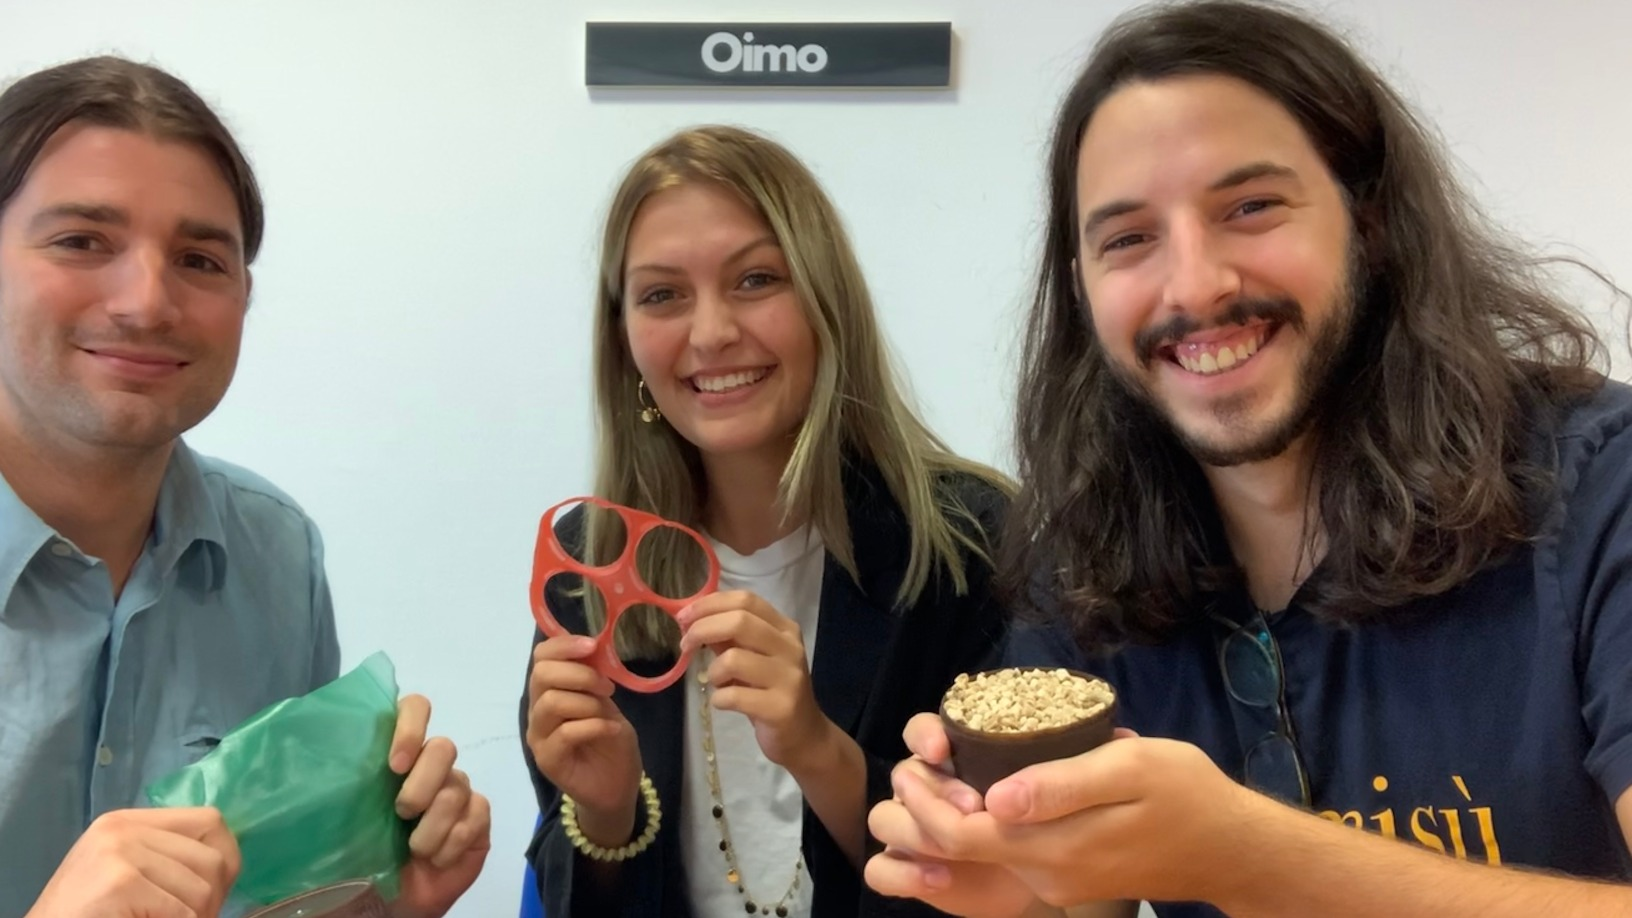 Oimo: Biodegradable marine-based bioplastics for environmentally friendly food packaging